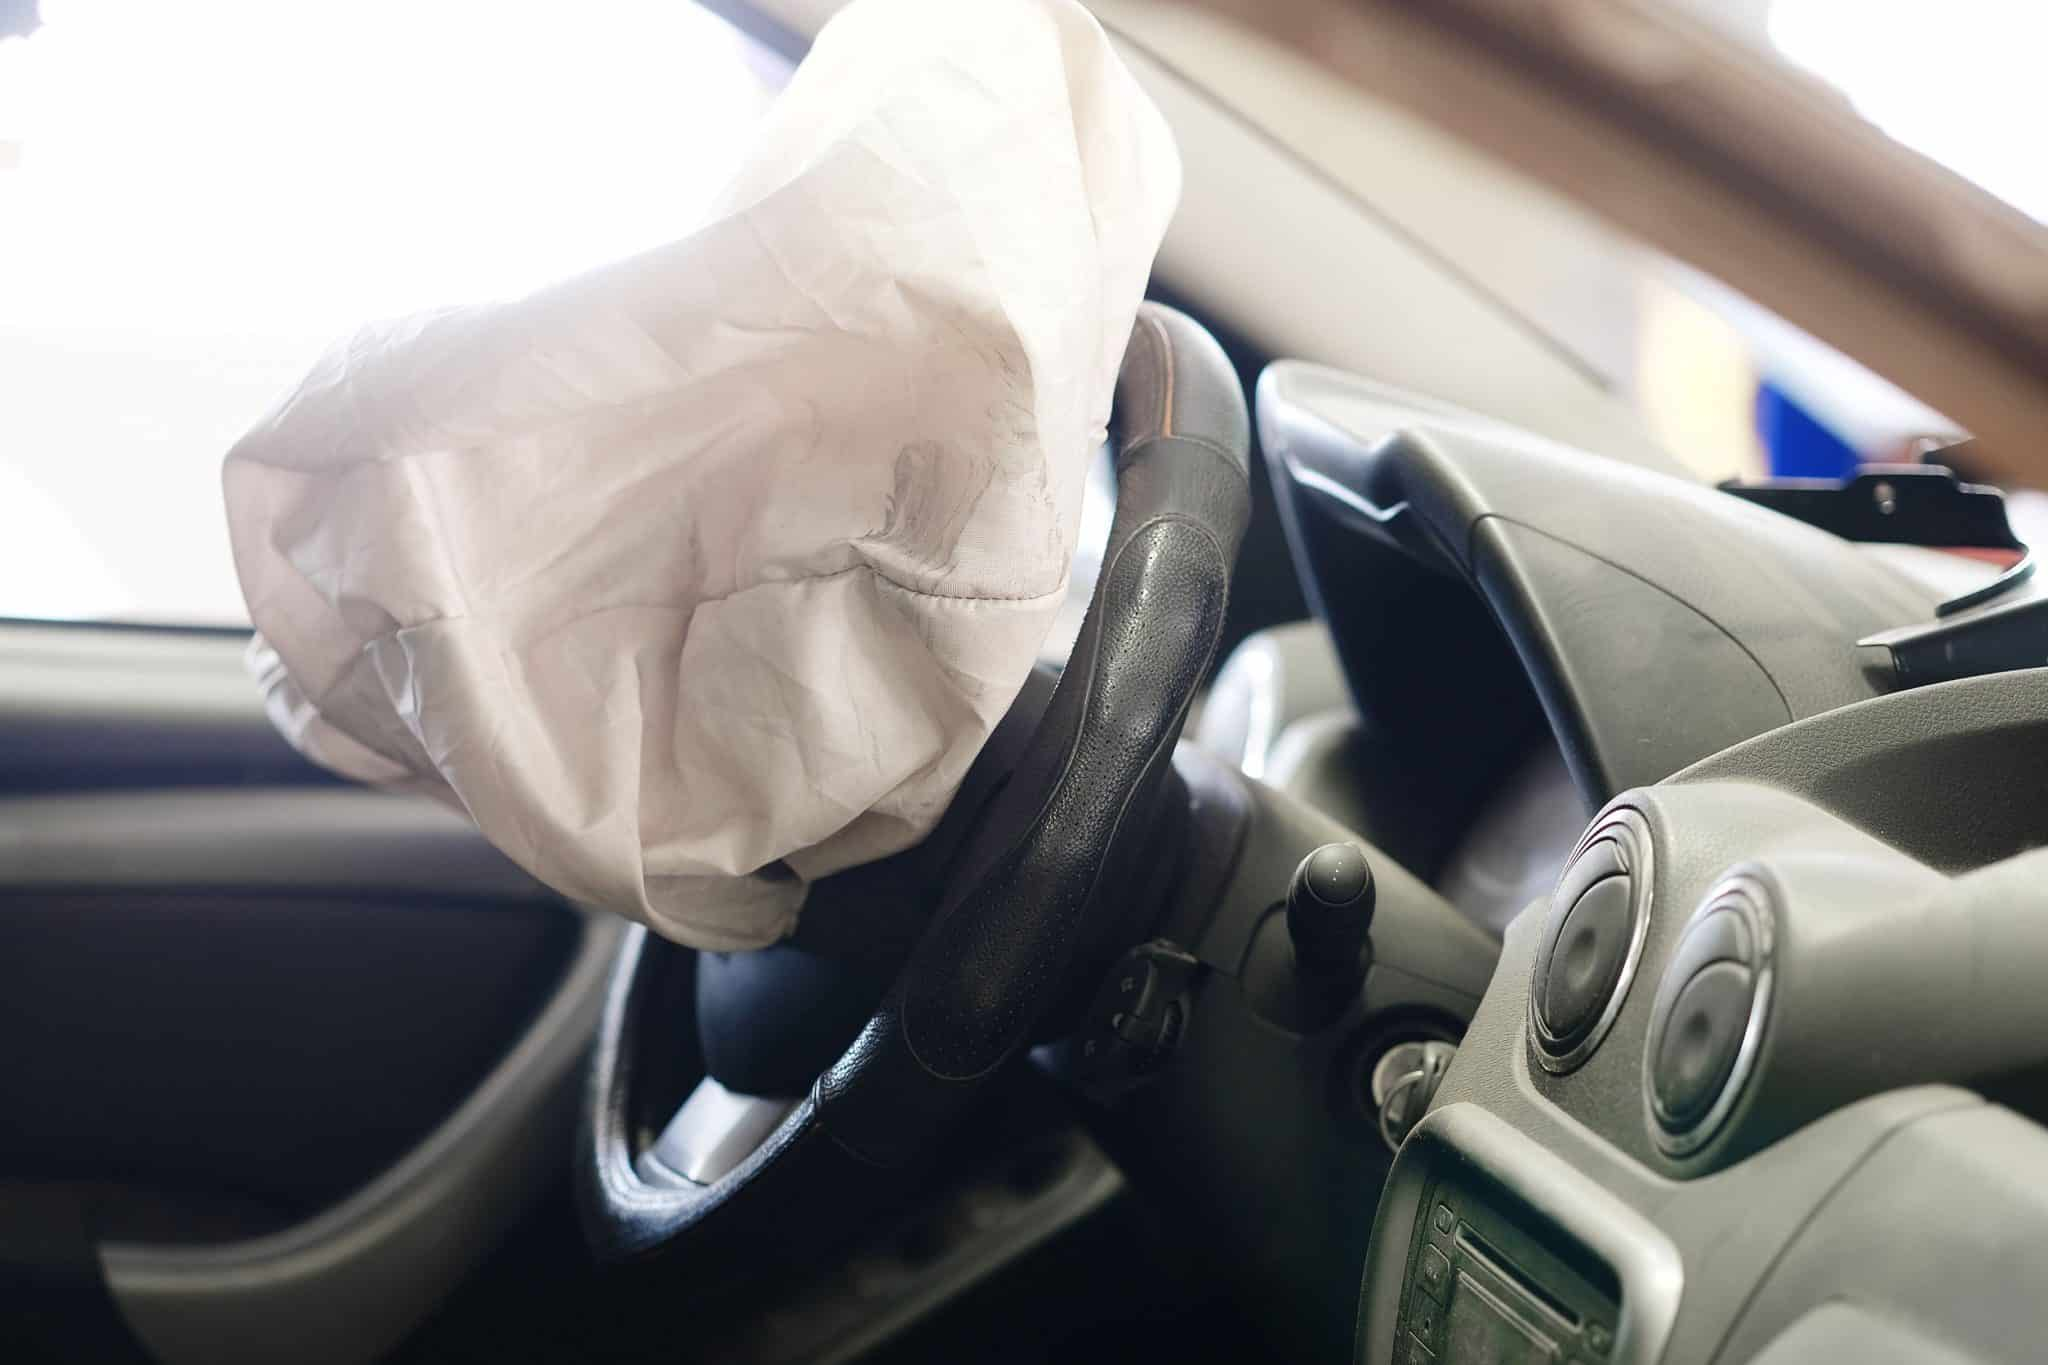 Picture of airbag after a vehicle accident